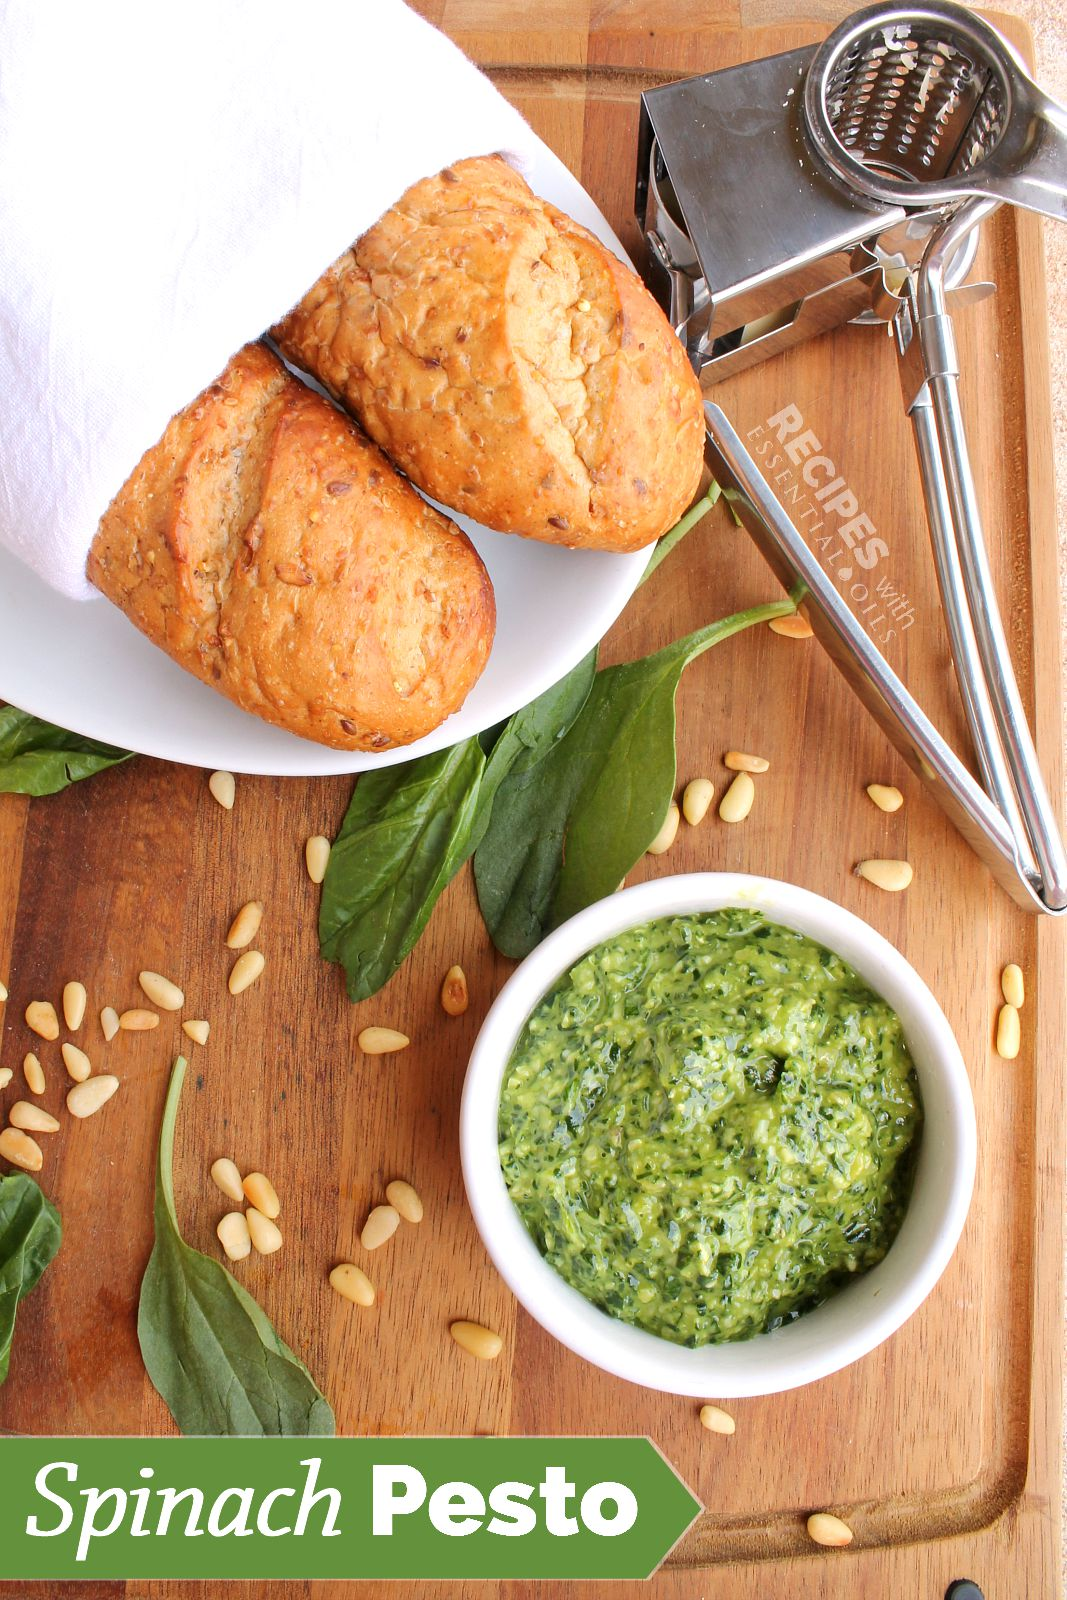 Spinach Pesto Recipe from RecipesWithEssentialOils.com